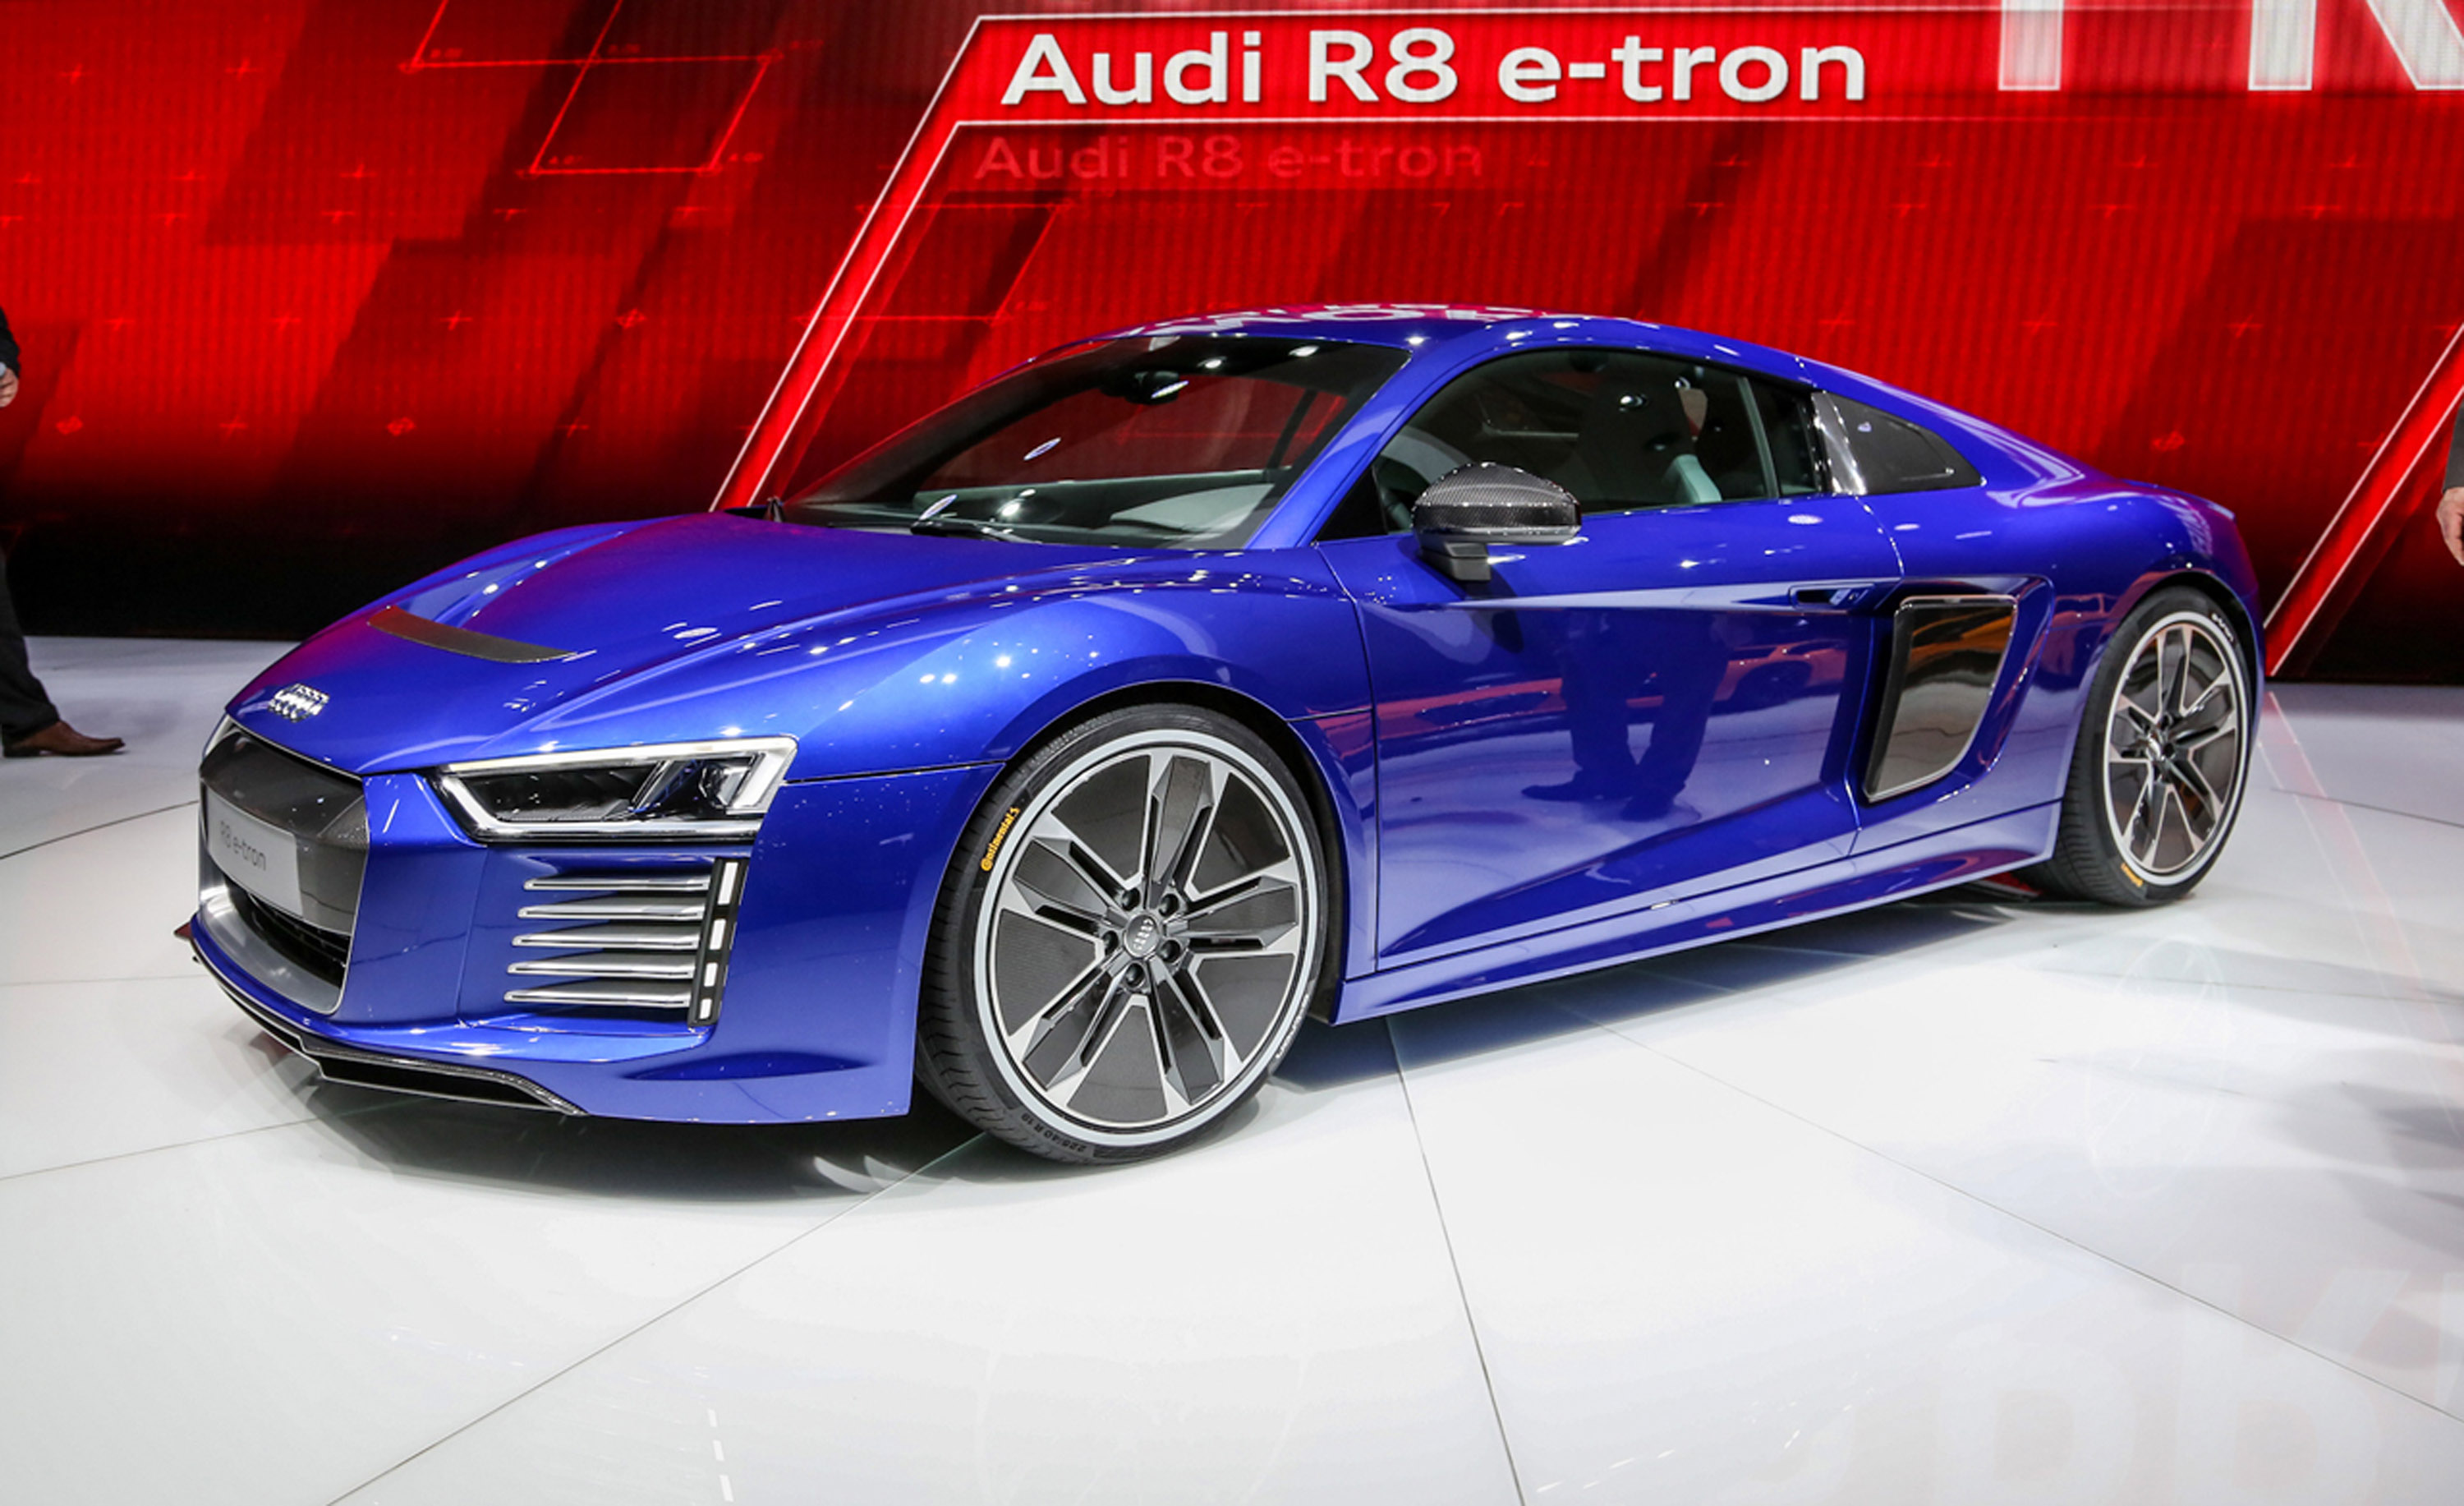 2017 The Audi R8 E Tron Piloted Driving Concept Car 1 6